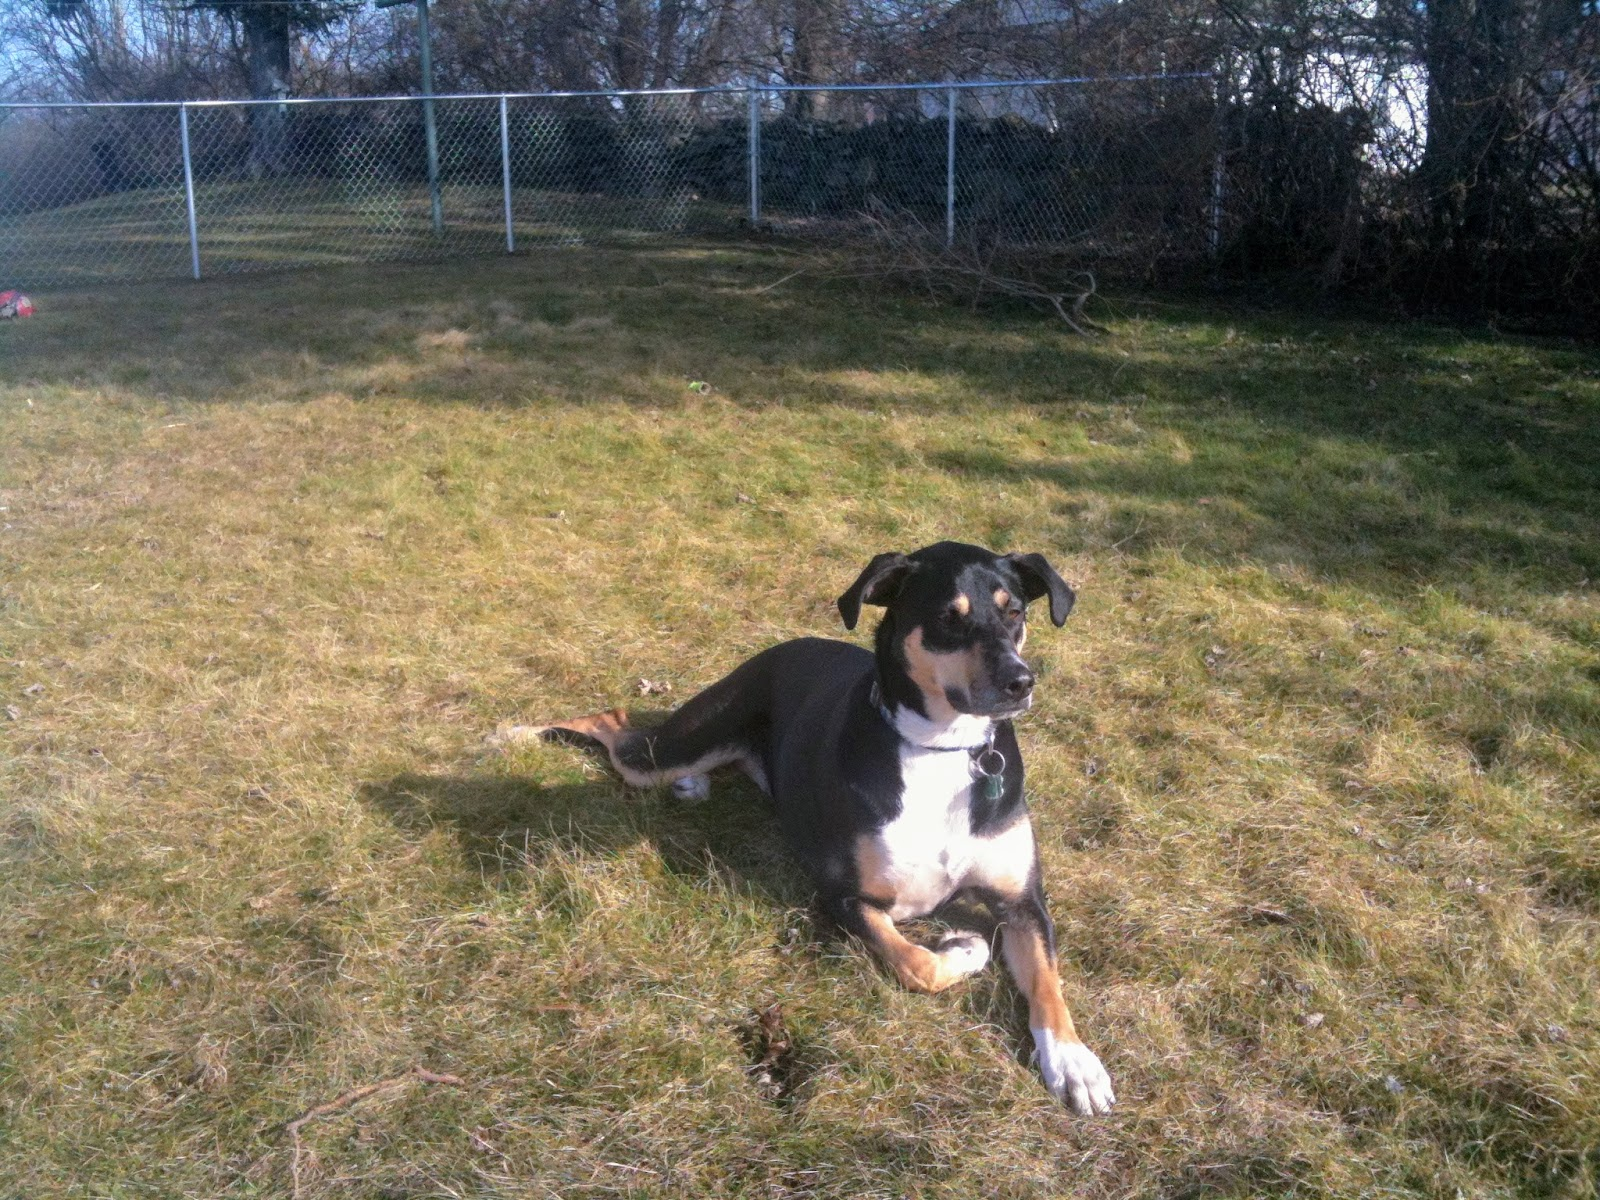 Roxy is enjoying the sun in her new fenced in backyard!